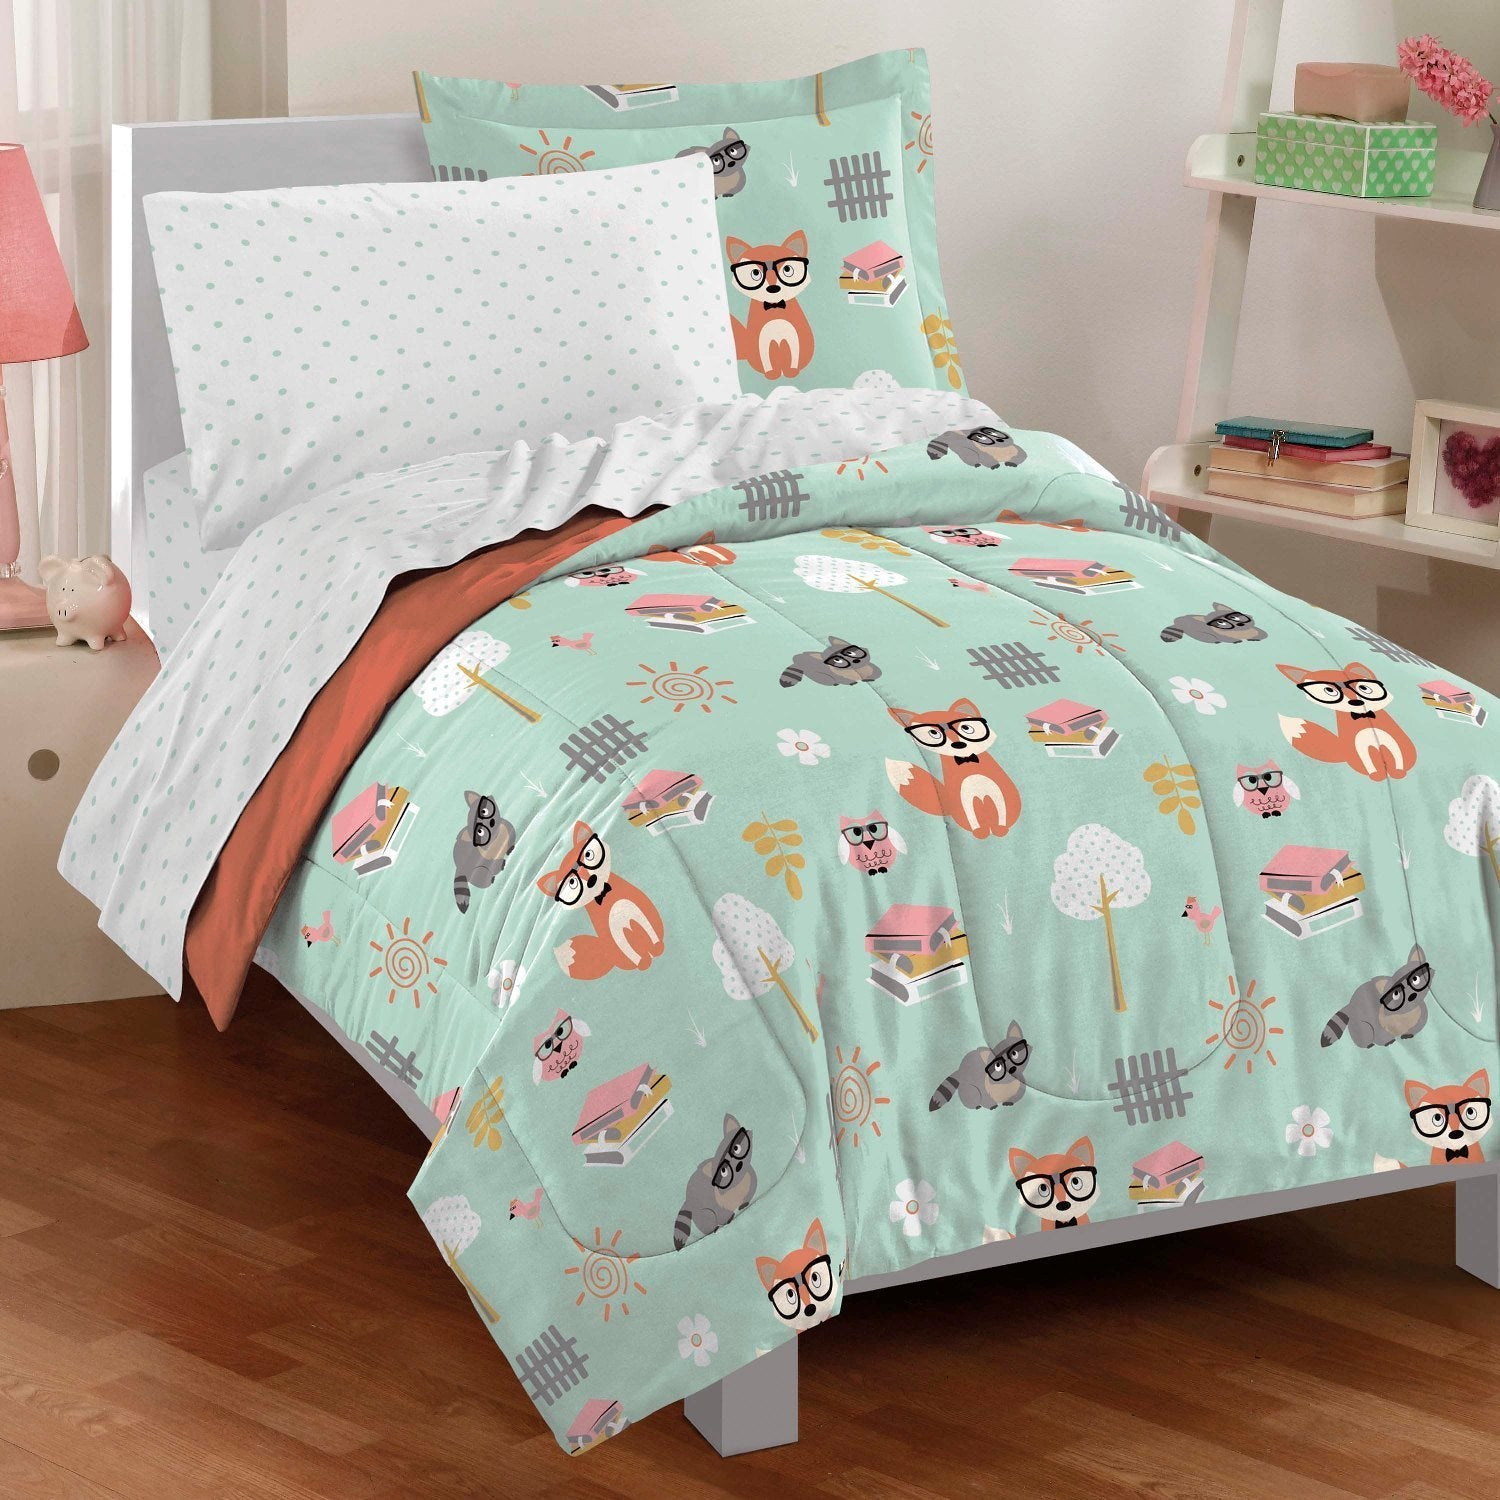 Shop Dream Factory Woodland Friends Twin Bed In A Bag With Sheet Set   Free  Shipping Today   Overstock.com   10151527